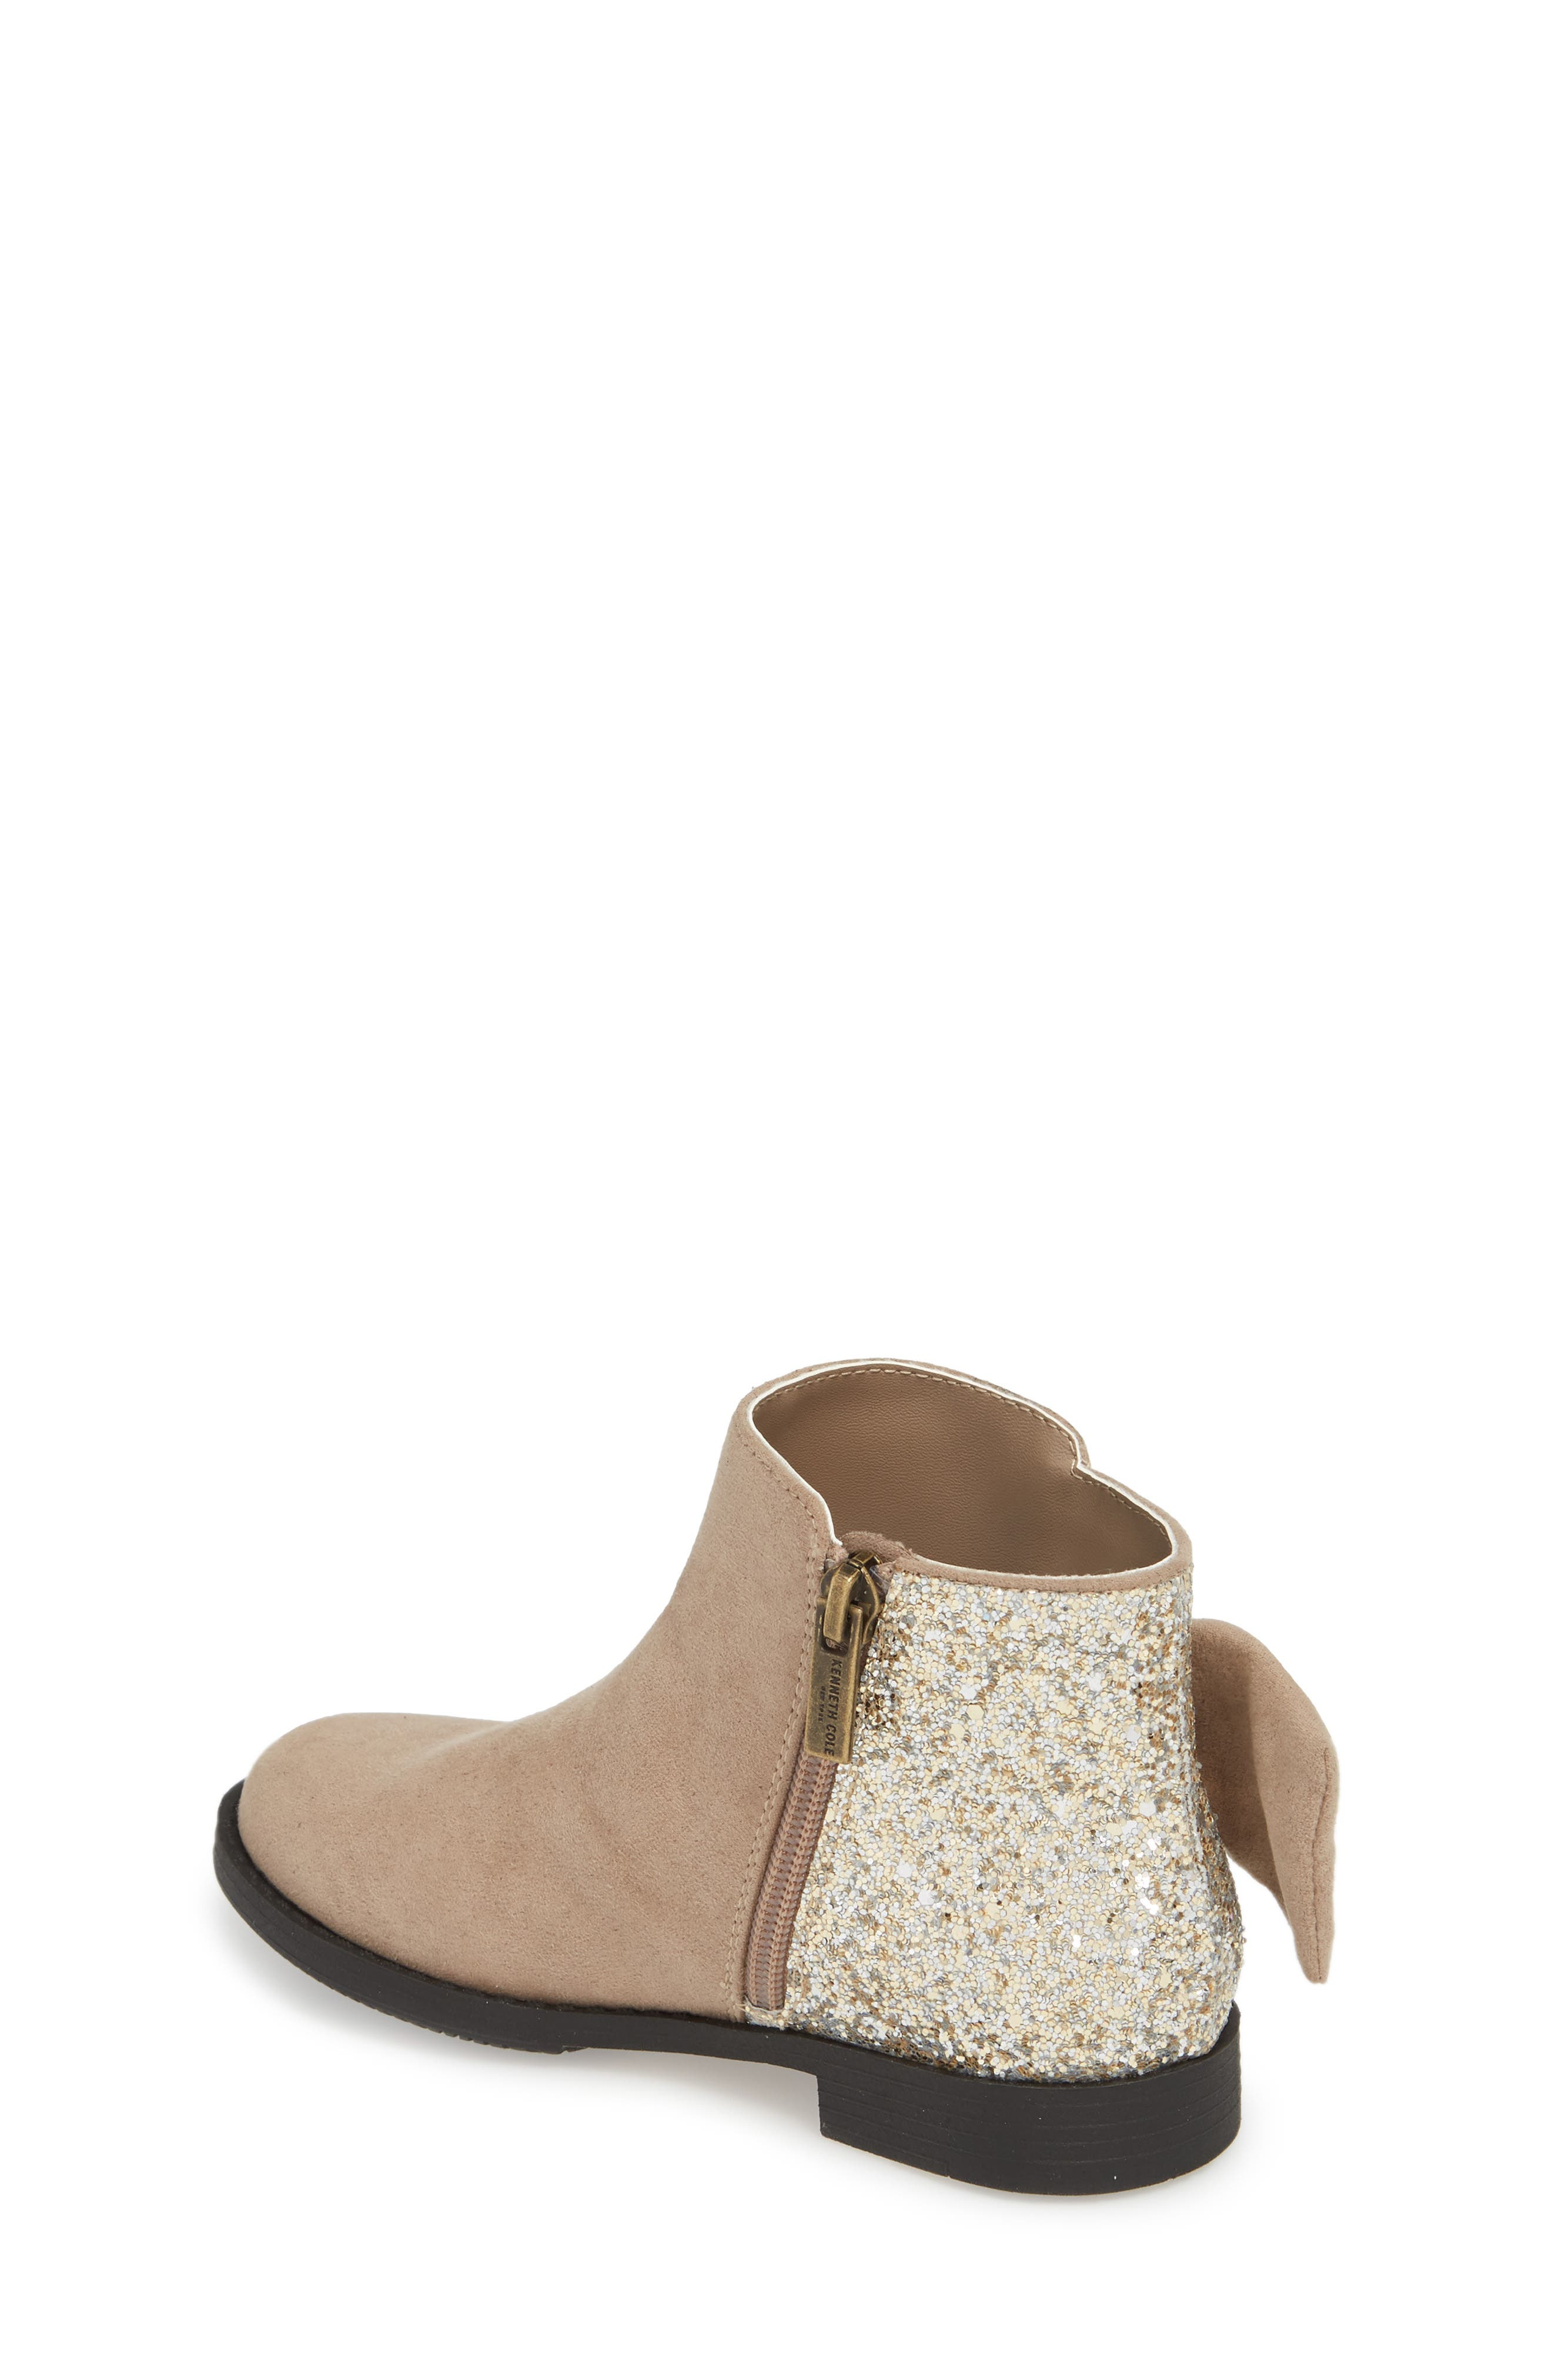 Kenneth Cole Collection Glittery Kennedy Tie Bootie,                             Alternate thumbnail 2, color,                             TAUPE